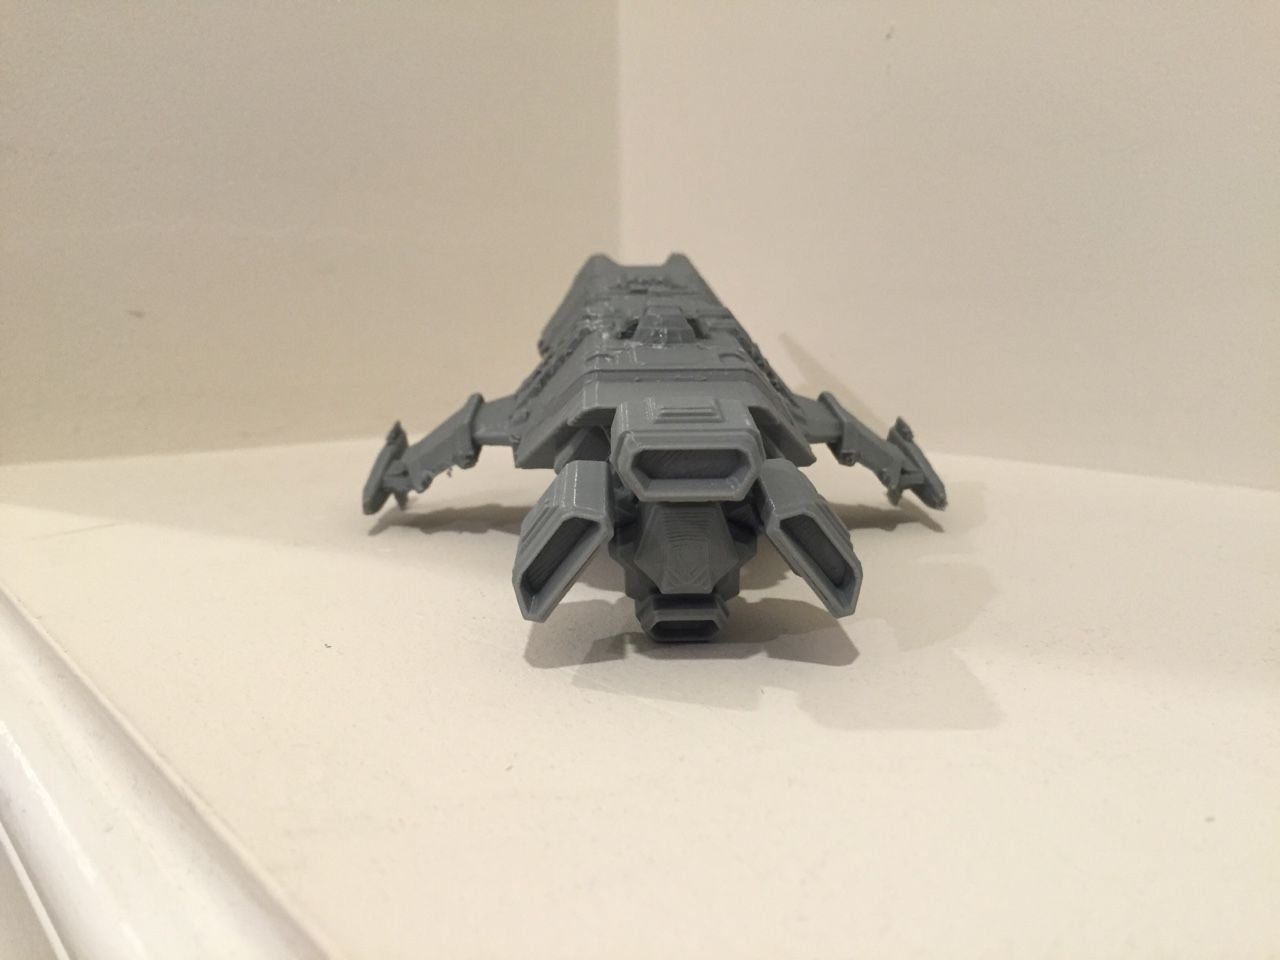 3d printed tengu from eve online eve online 3d prints 3d printed tengu from eve online malvernweather Image collections